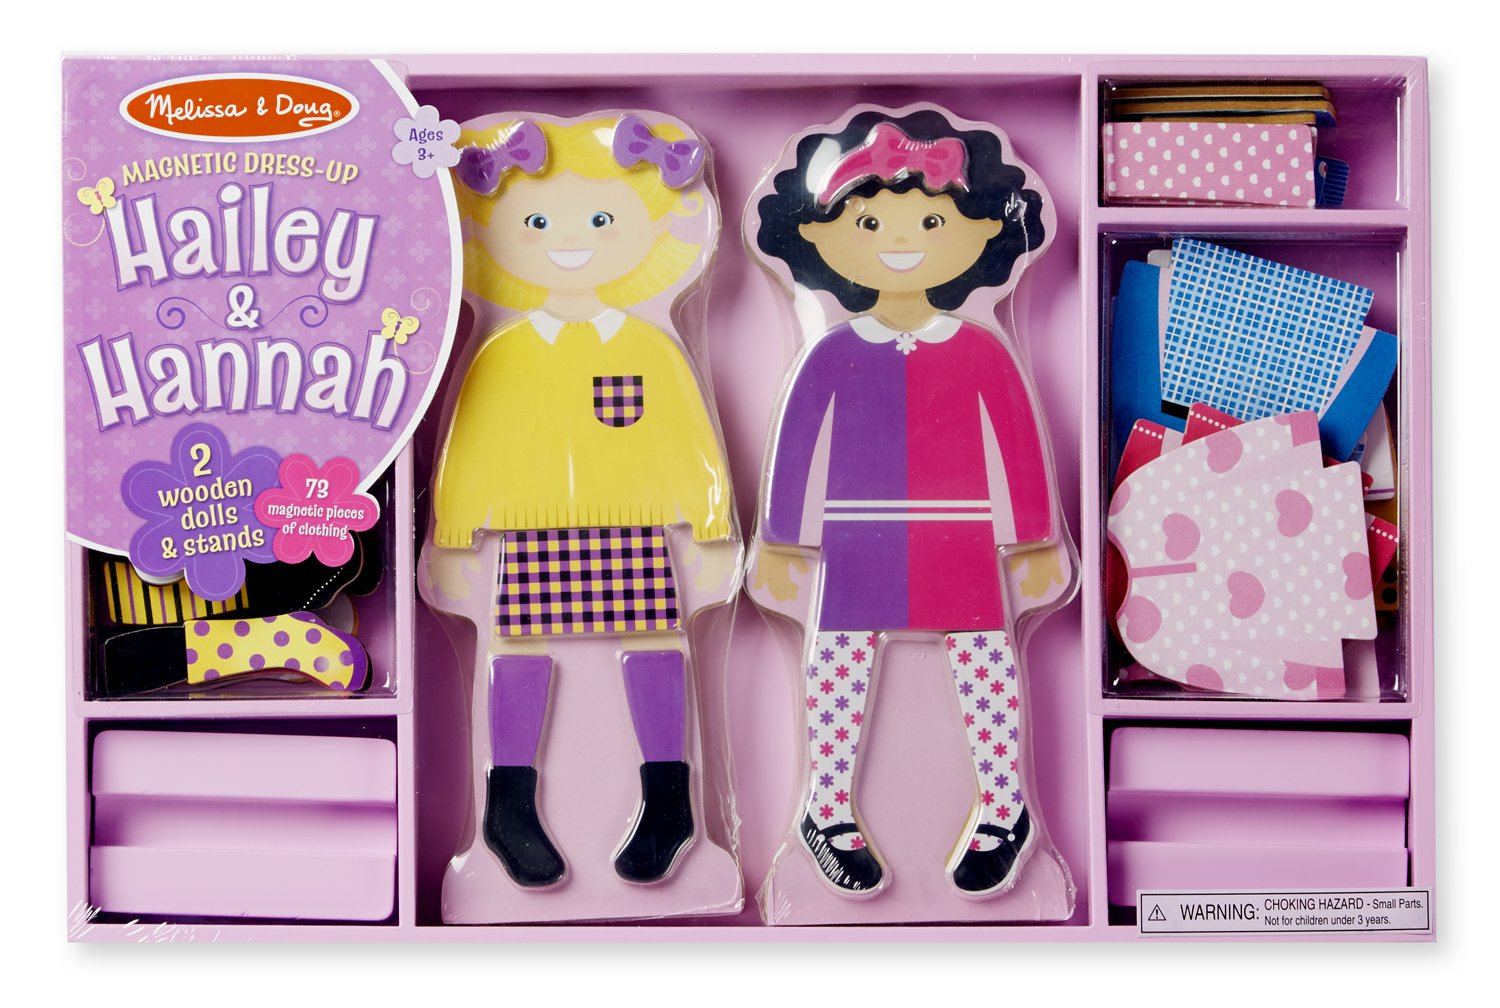 Melissa and Doug Hailey and Hannah Magnetic Dress-Up Dolls Set popular girls toys age 3